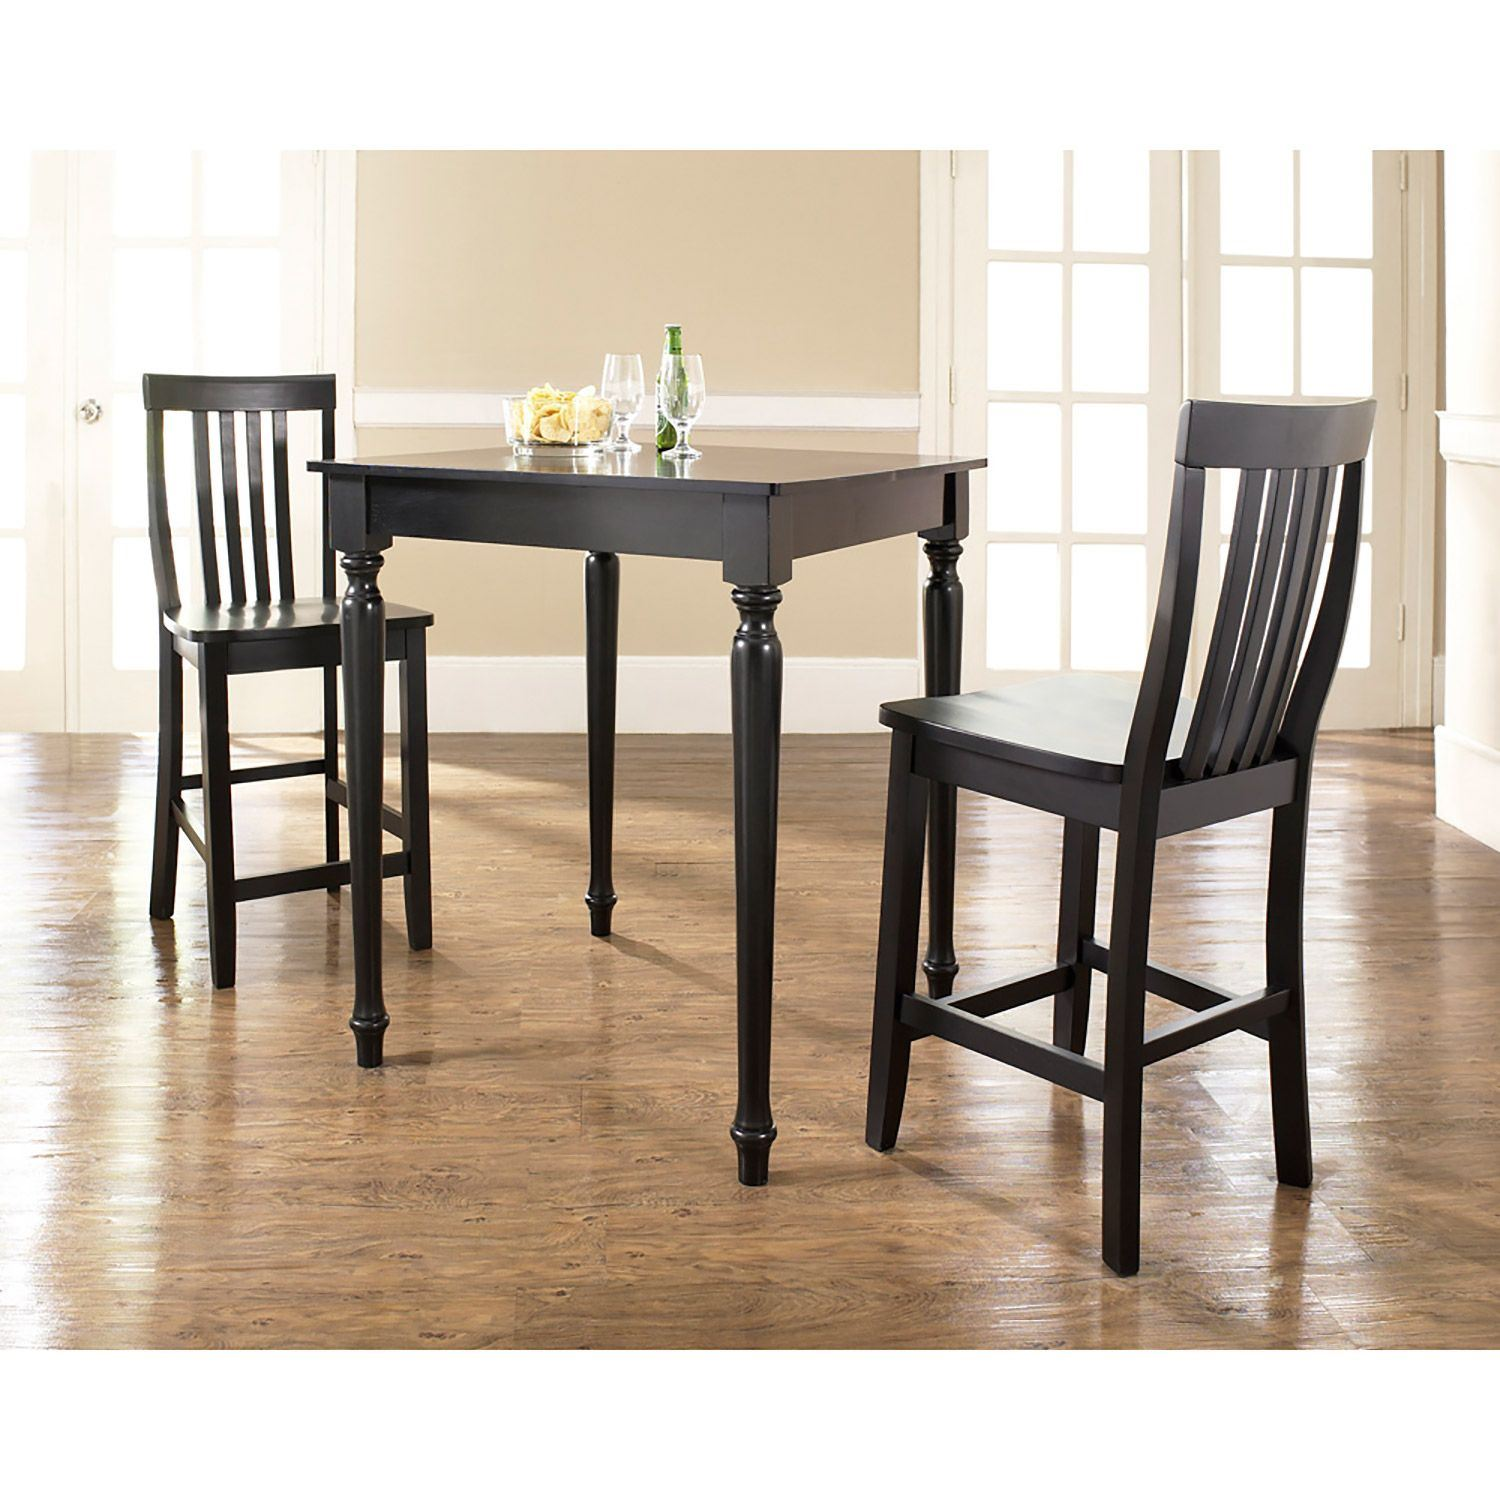 3 Piece Pub Dining Set Black D Kd320011bk Crosley